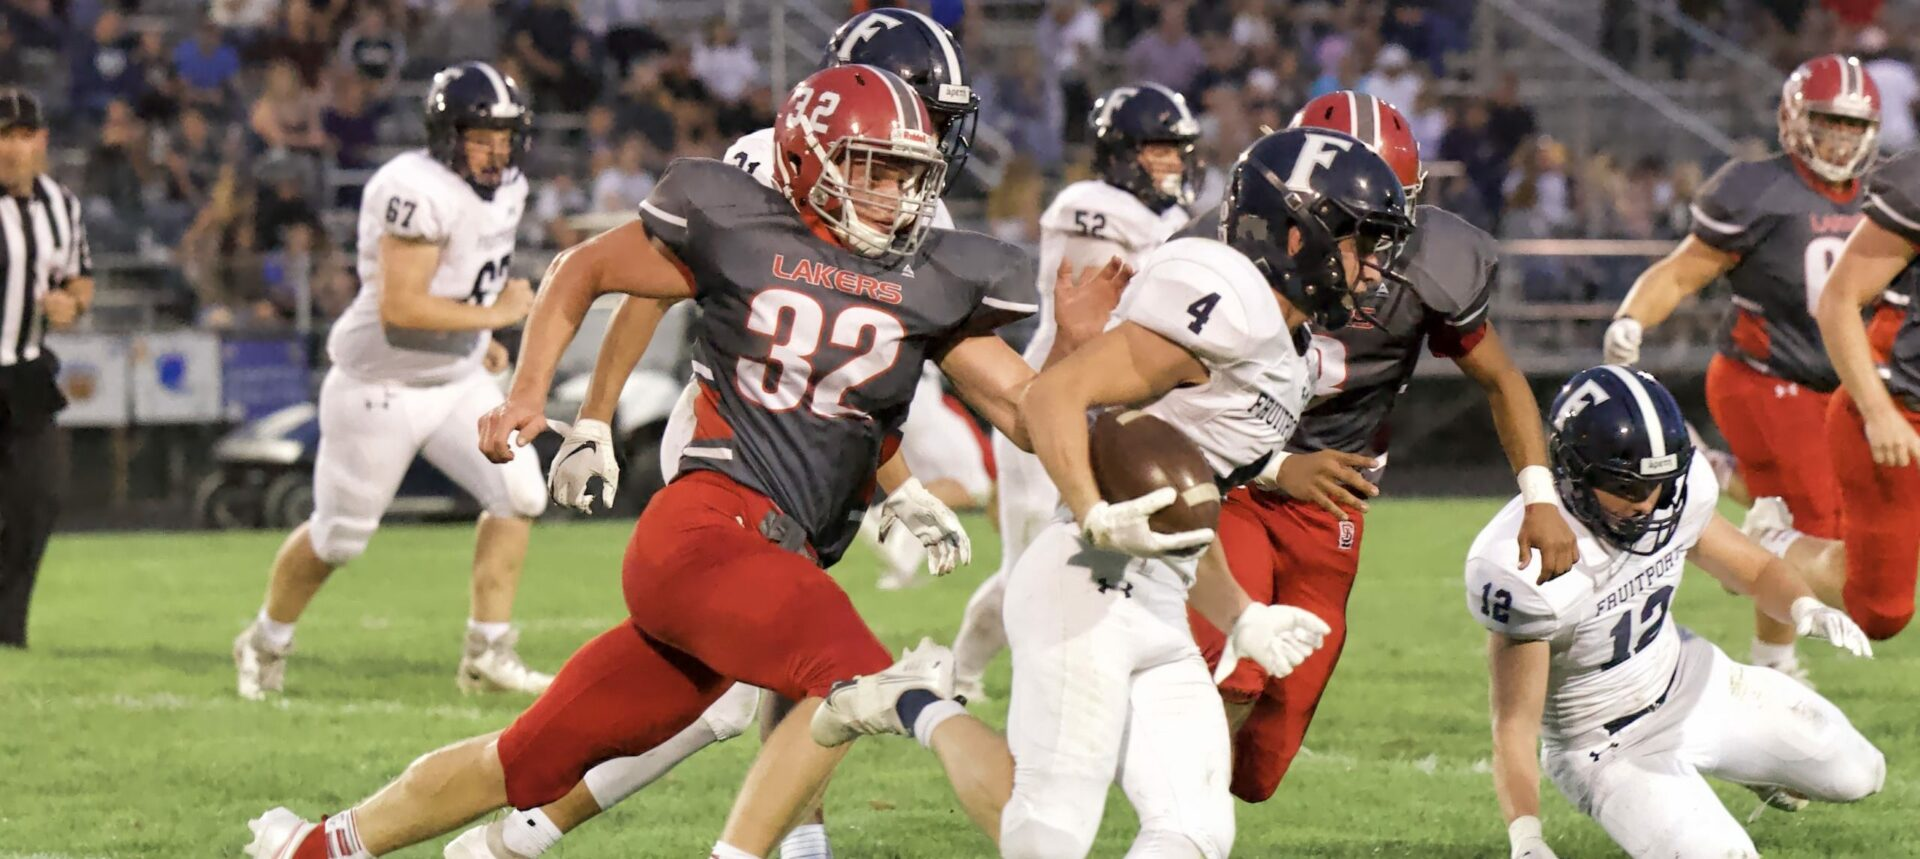 High school football playoff questions: Will 2021 have 9-0 teams that don't make the cut?